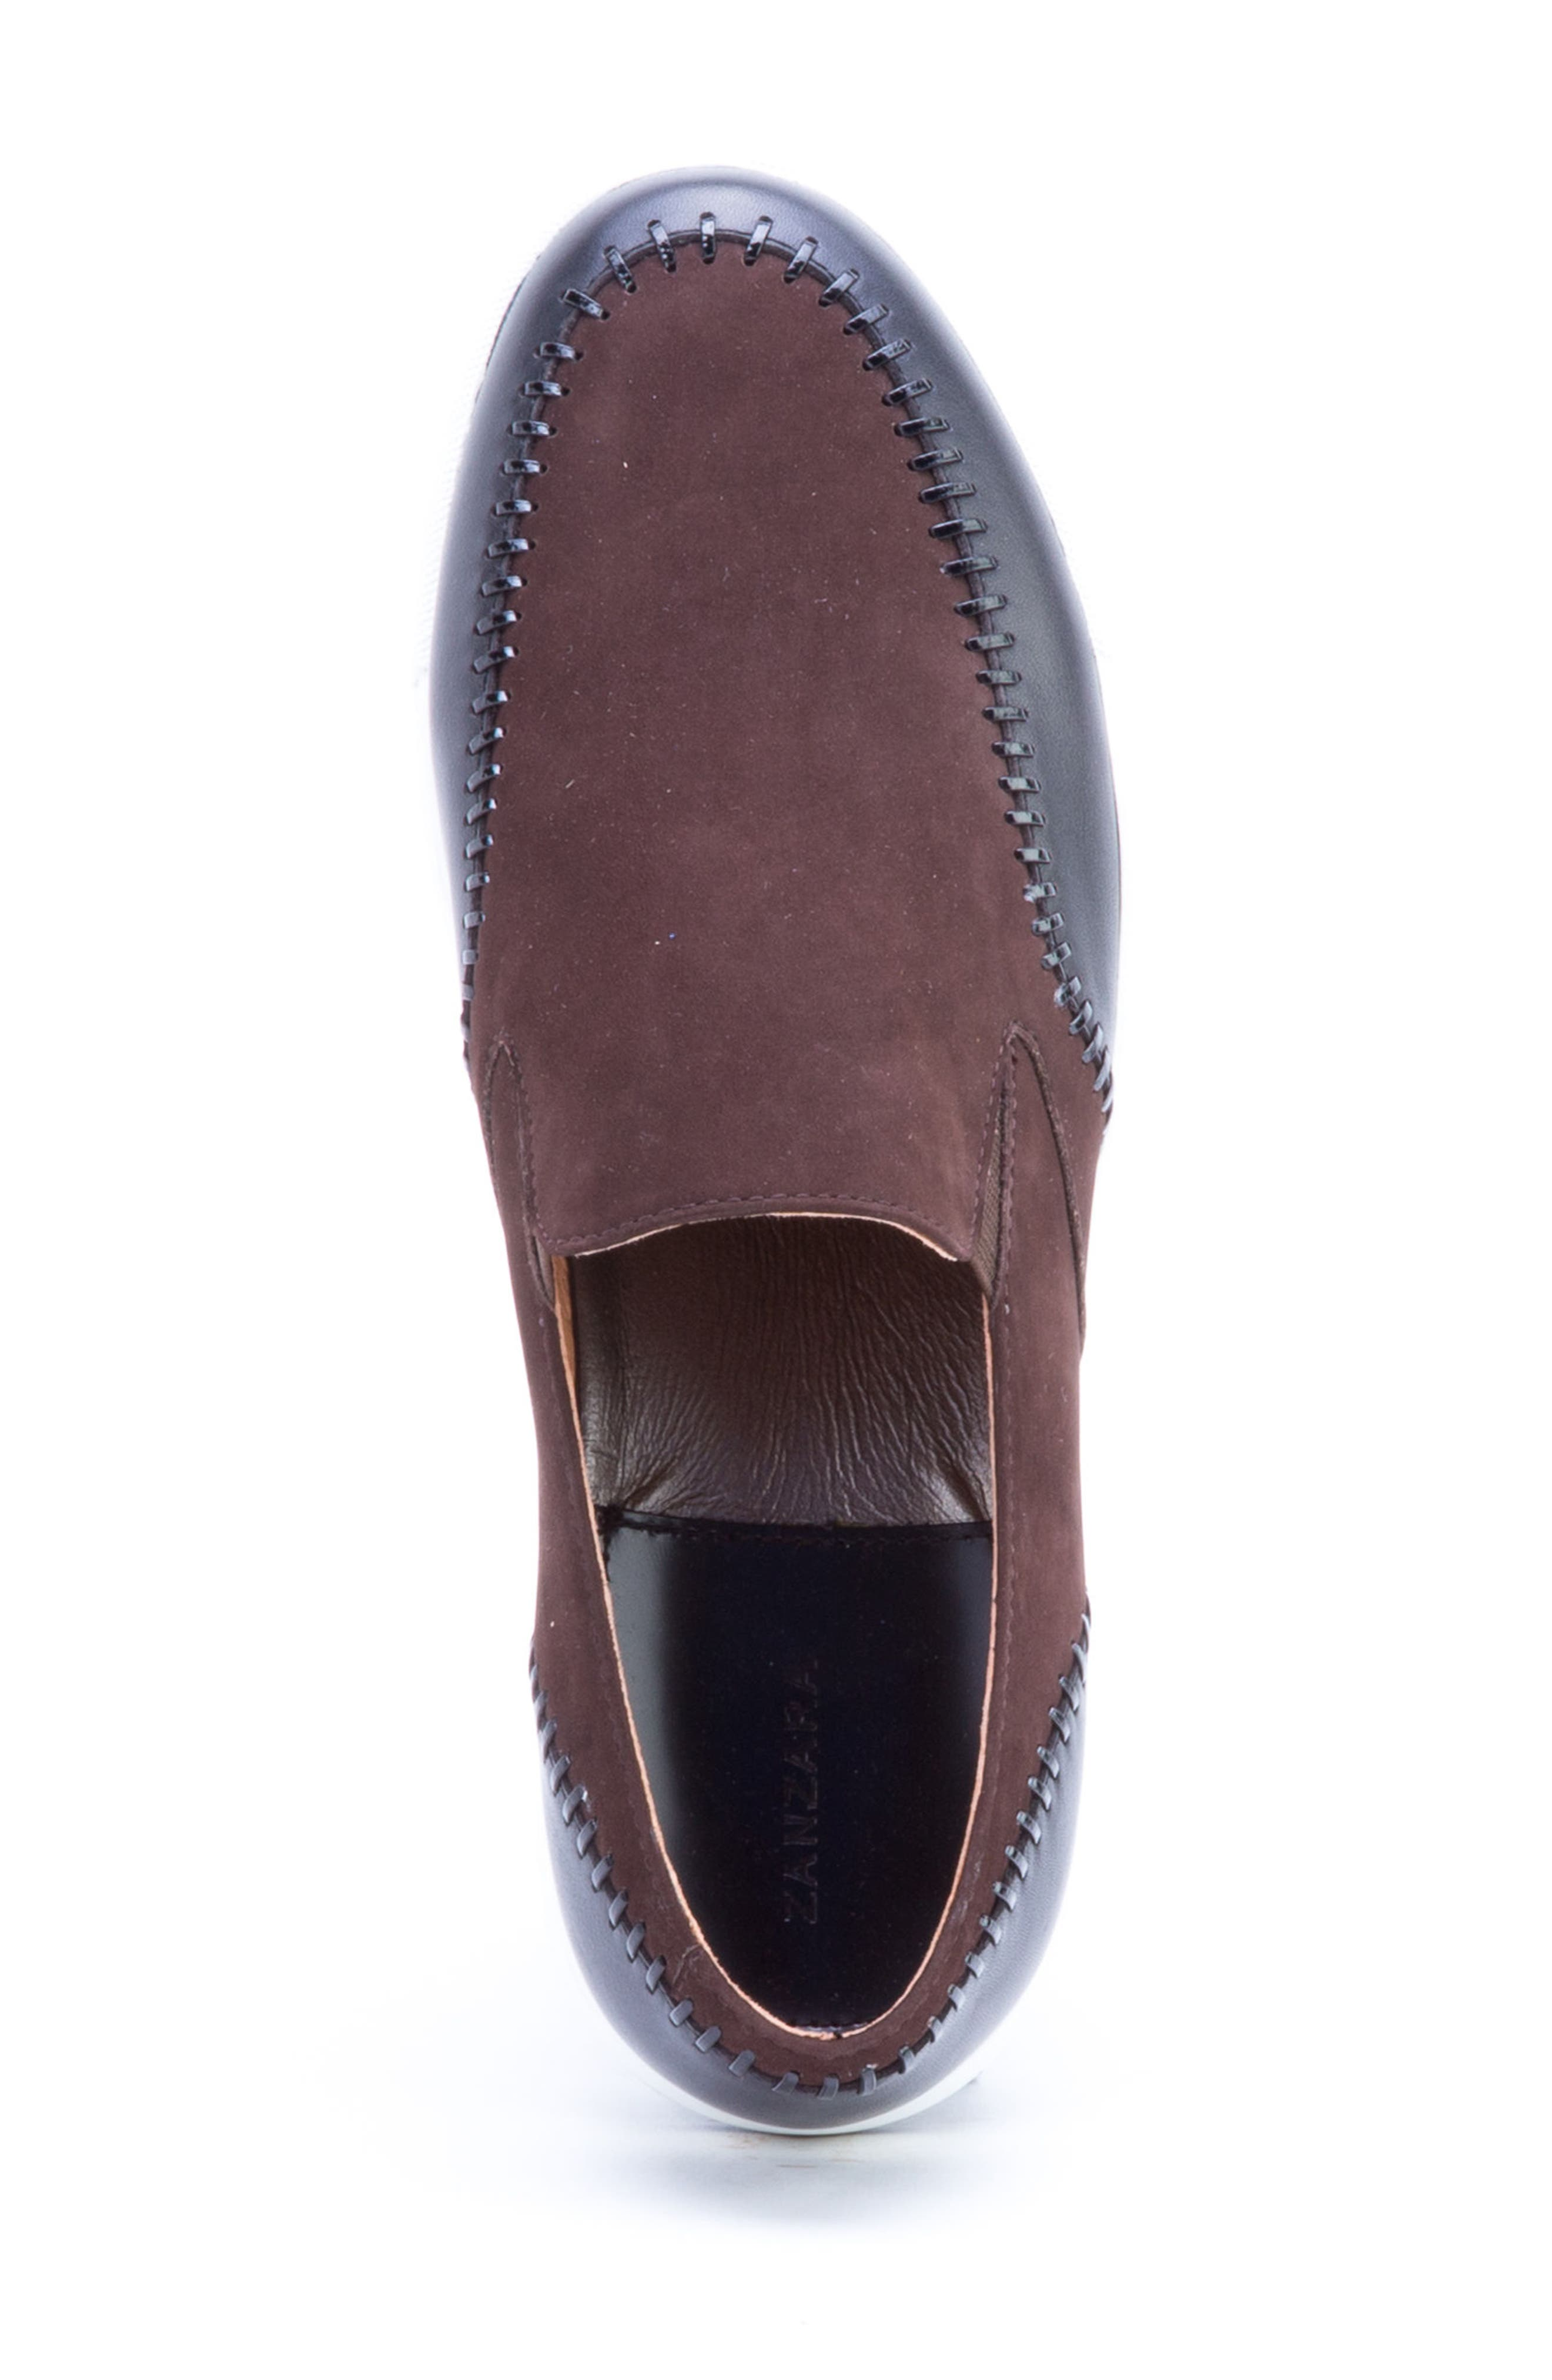 Caravaggio Whipstitched Slip-On Sneaker,                             Alternate thumbnail 5, color,                             BROWN SUEDE/ LEATHER